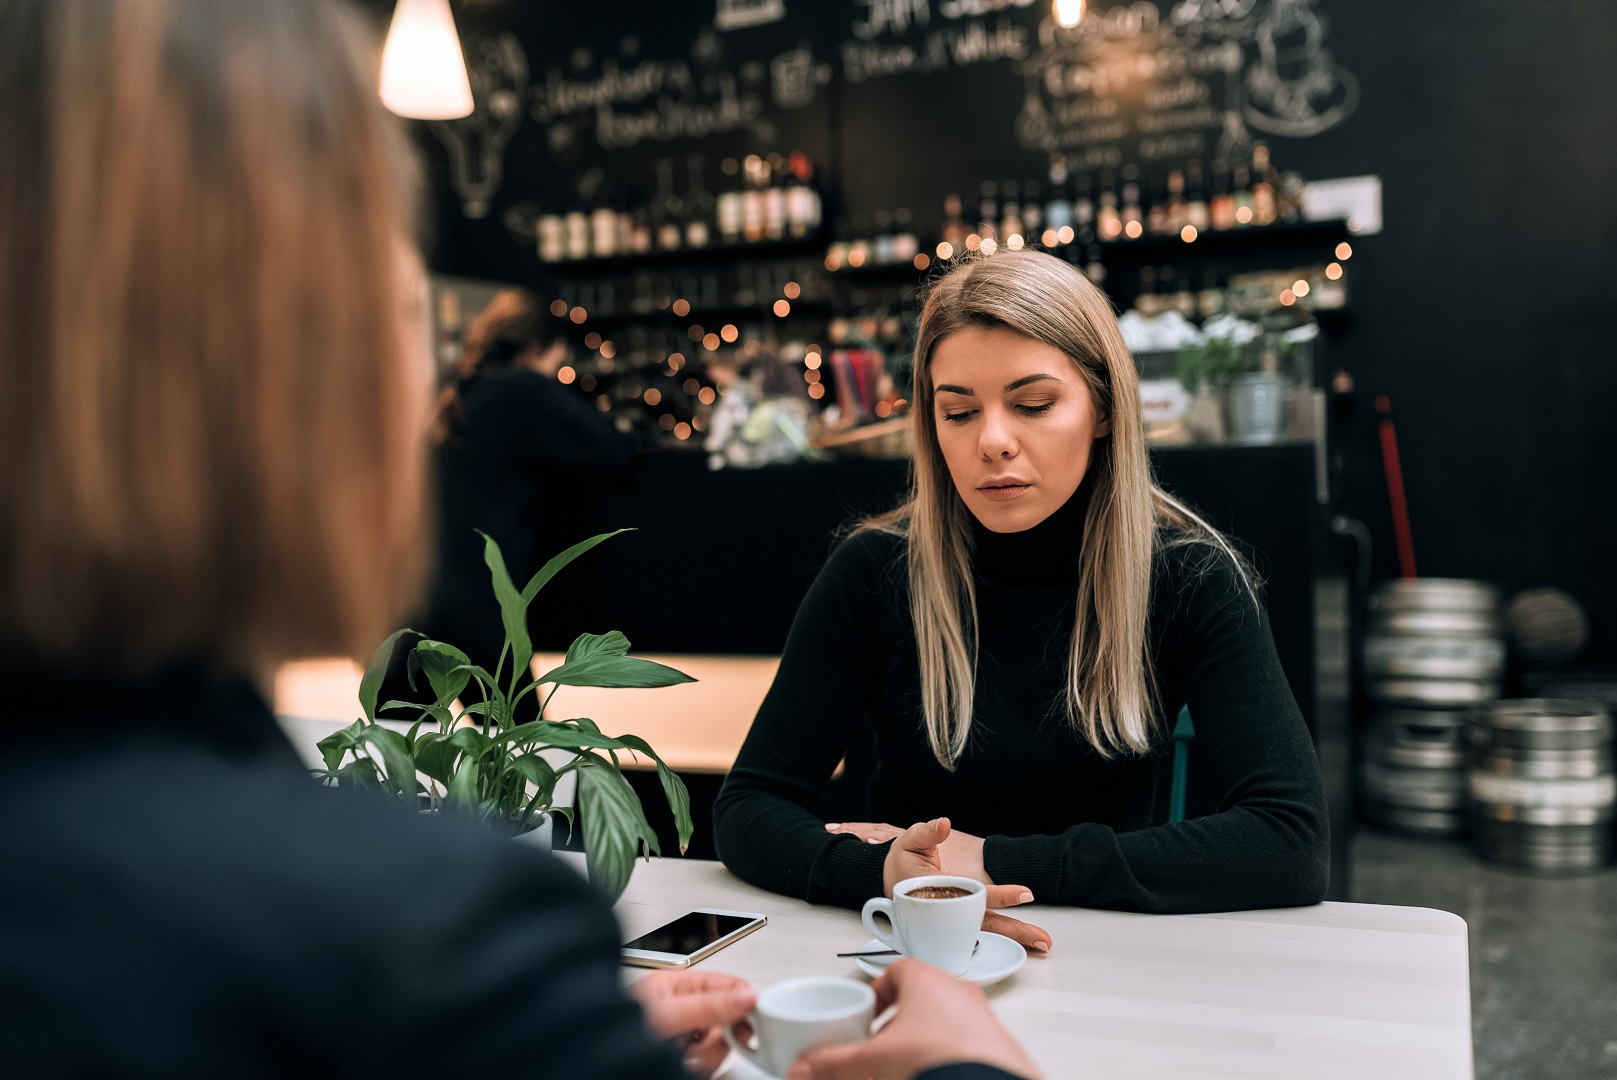 Sad Woman At Cafe With Friend Coffee on Table